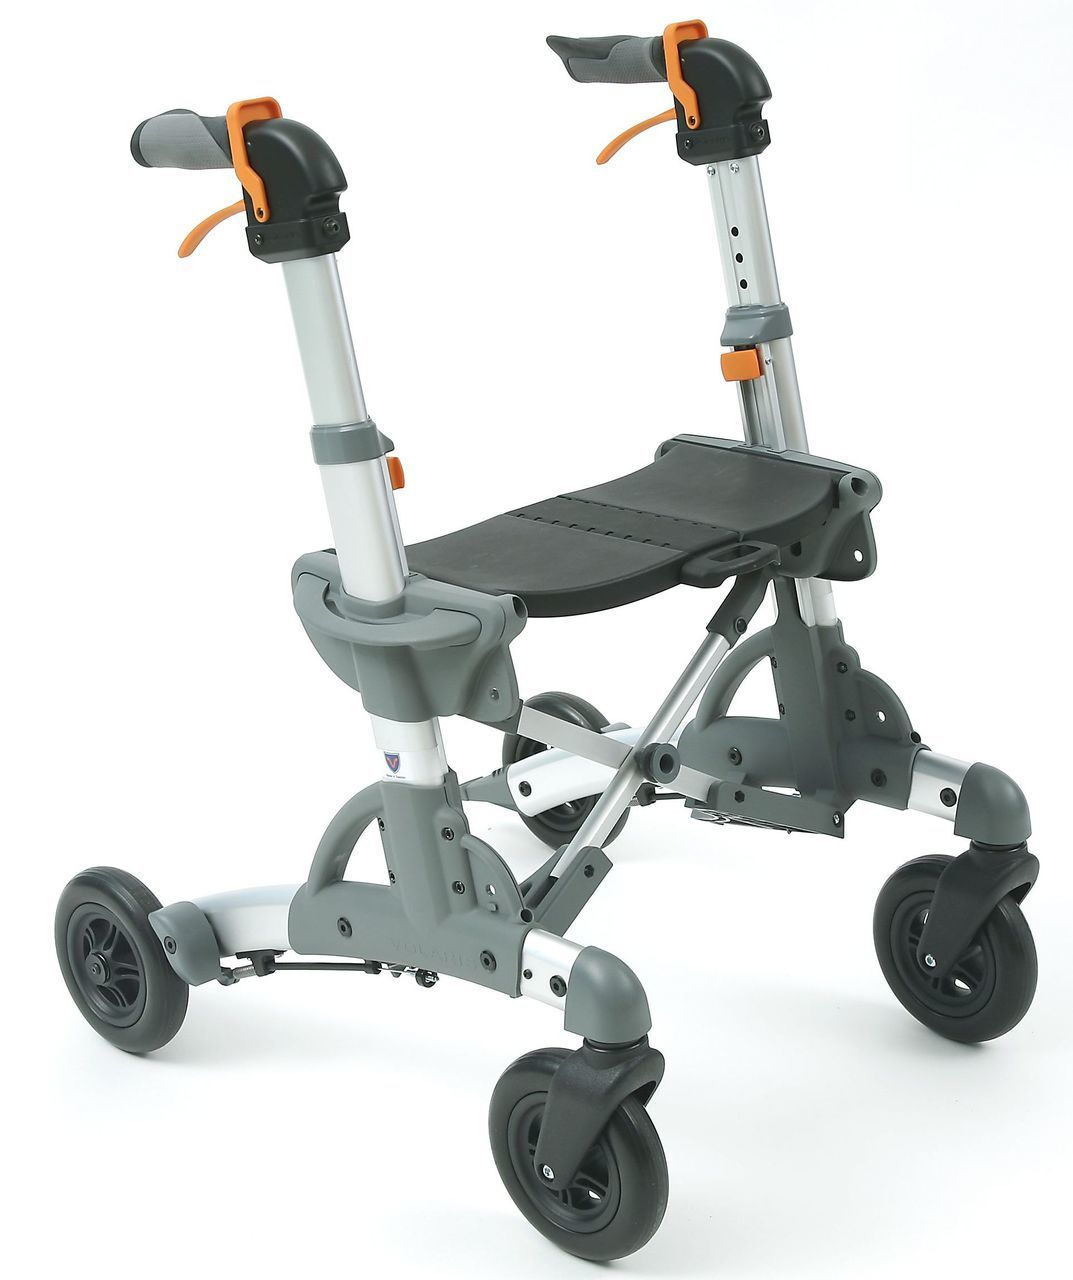 Volaris Smart Compact Fitness Rollator Walker Xlent Care Products Canada 제품